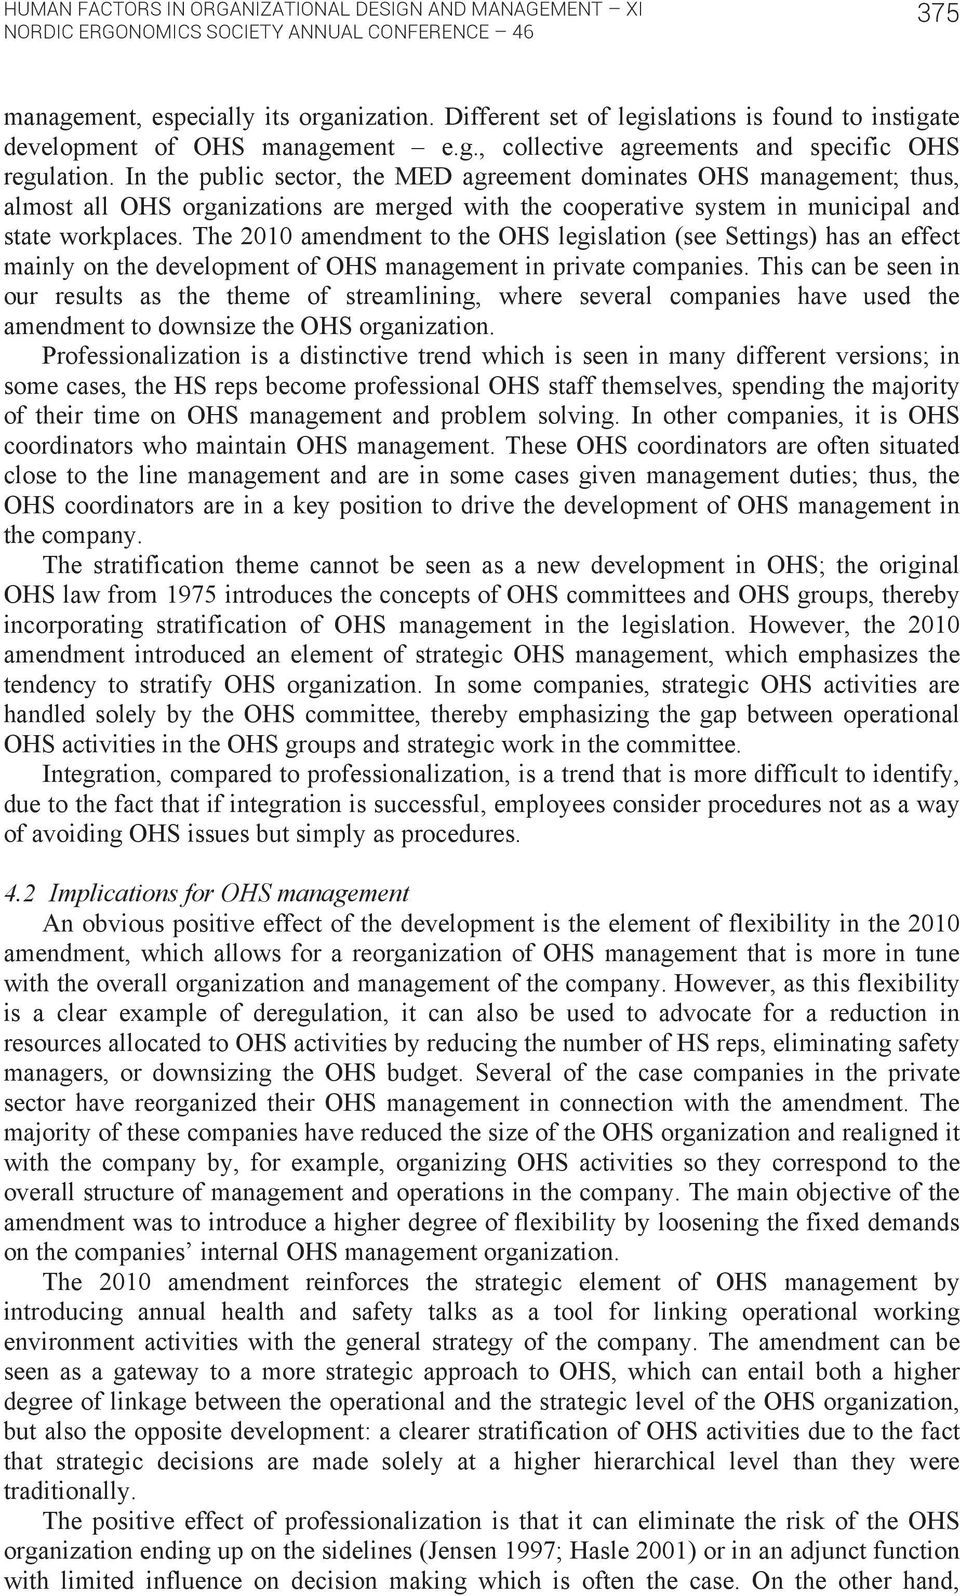 In the public sector, the MED agreement dominates OHS management; thus, almost all OHS organizations are merged with the cooperative system in municipal and state workplaces.